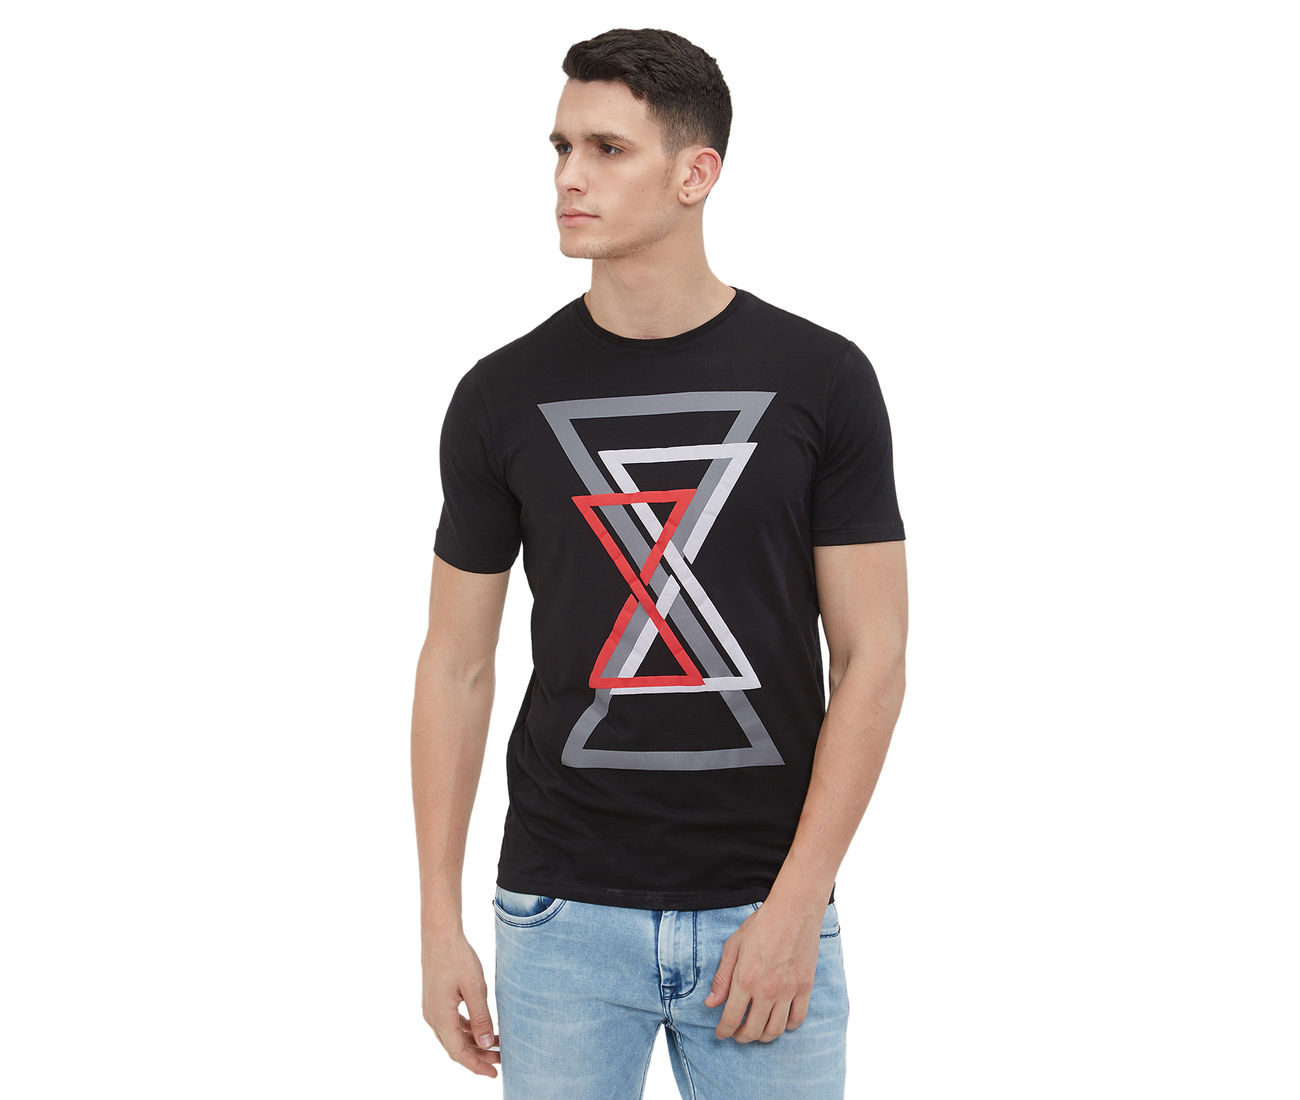 262097c6f Buy Black Color Cotton Printed Slim Fit T -Shirt For Men at ...